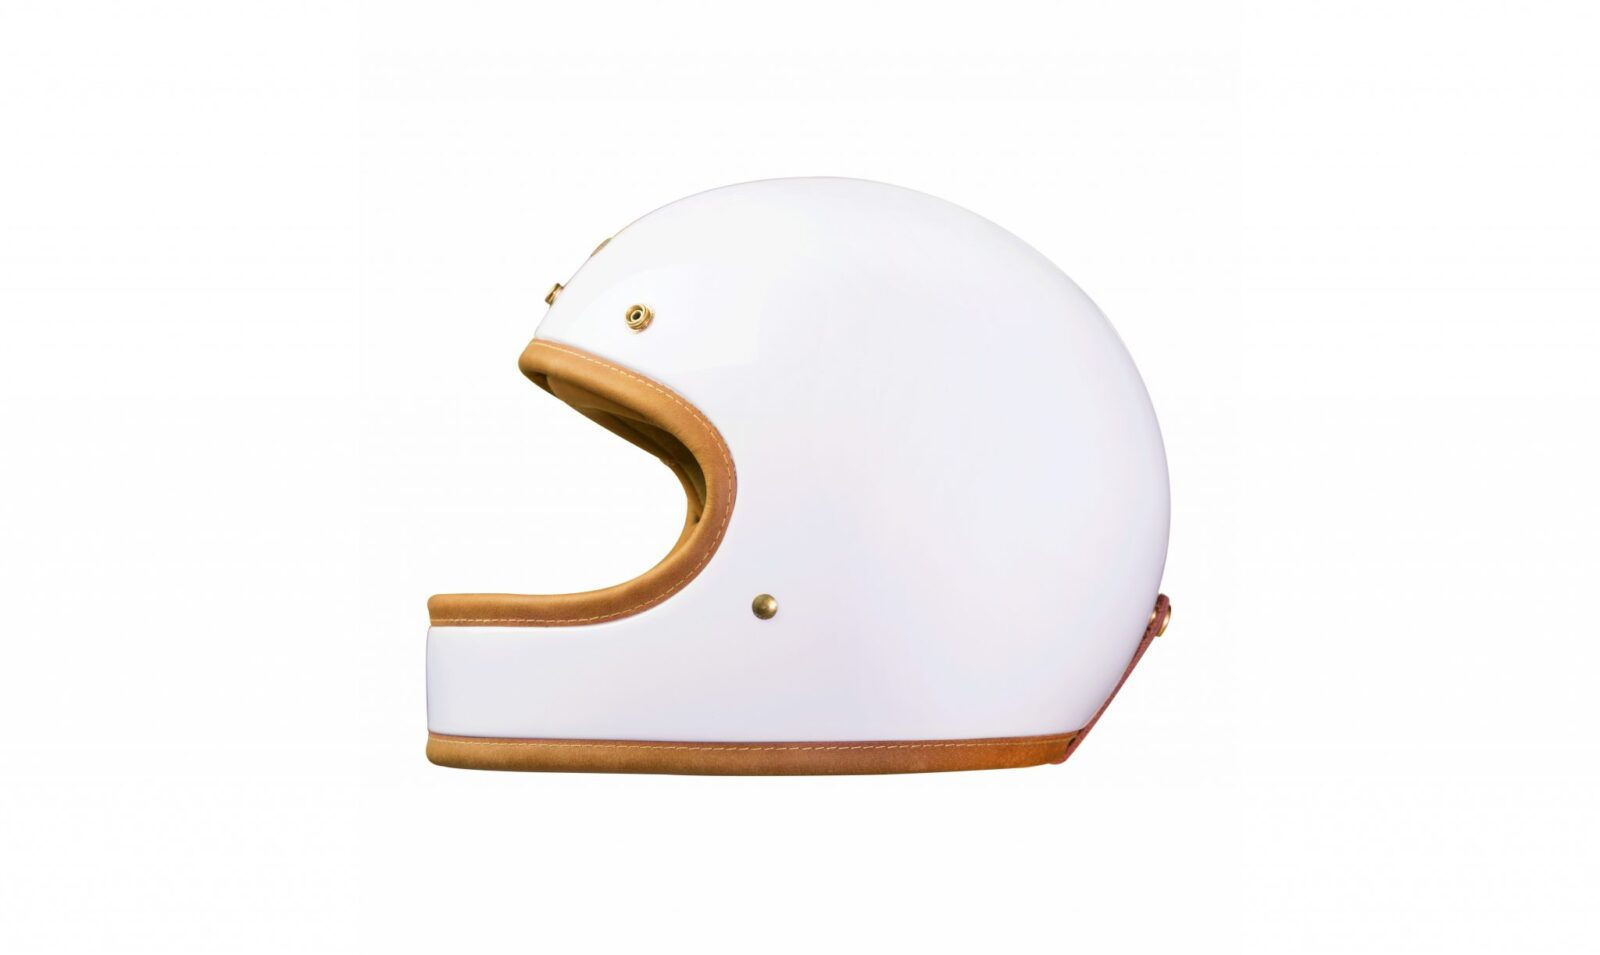 Heron Heroine Full Face Motorcycle Helmet Side 1600x955 - Hedon Heroine Full Face Motorcycle Helmet